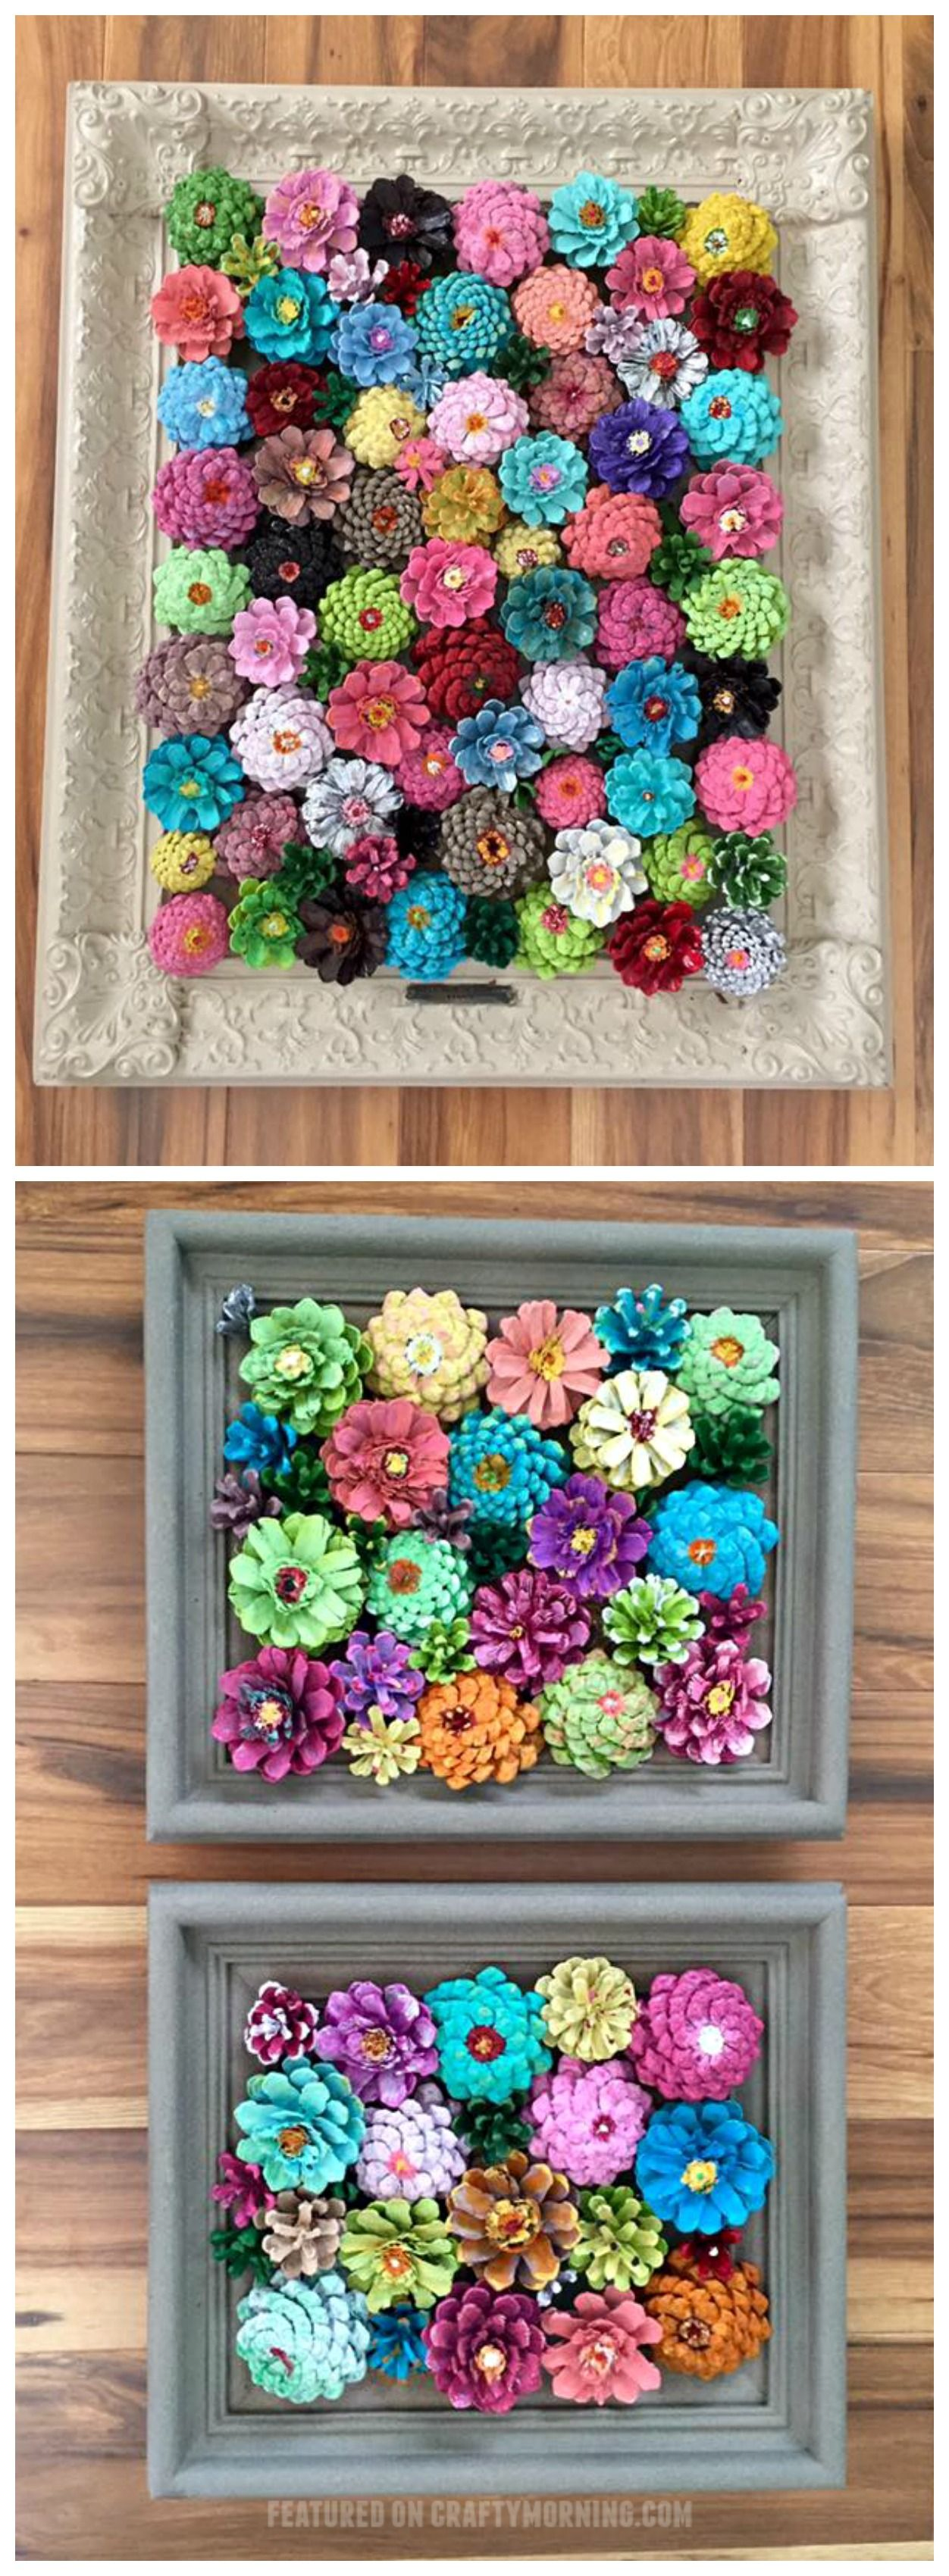 These pinecone flowers in a frame are so pretty perfect for Pine cone crafts for children